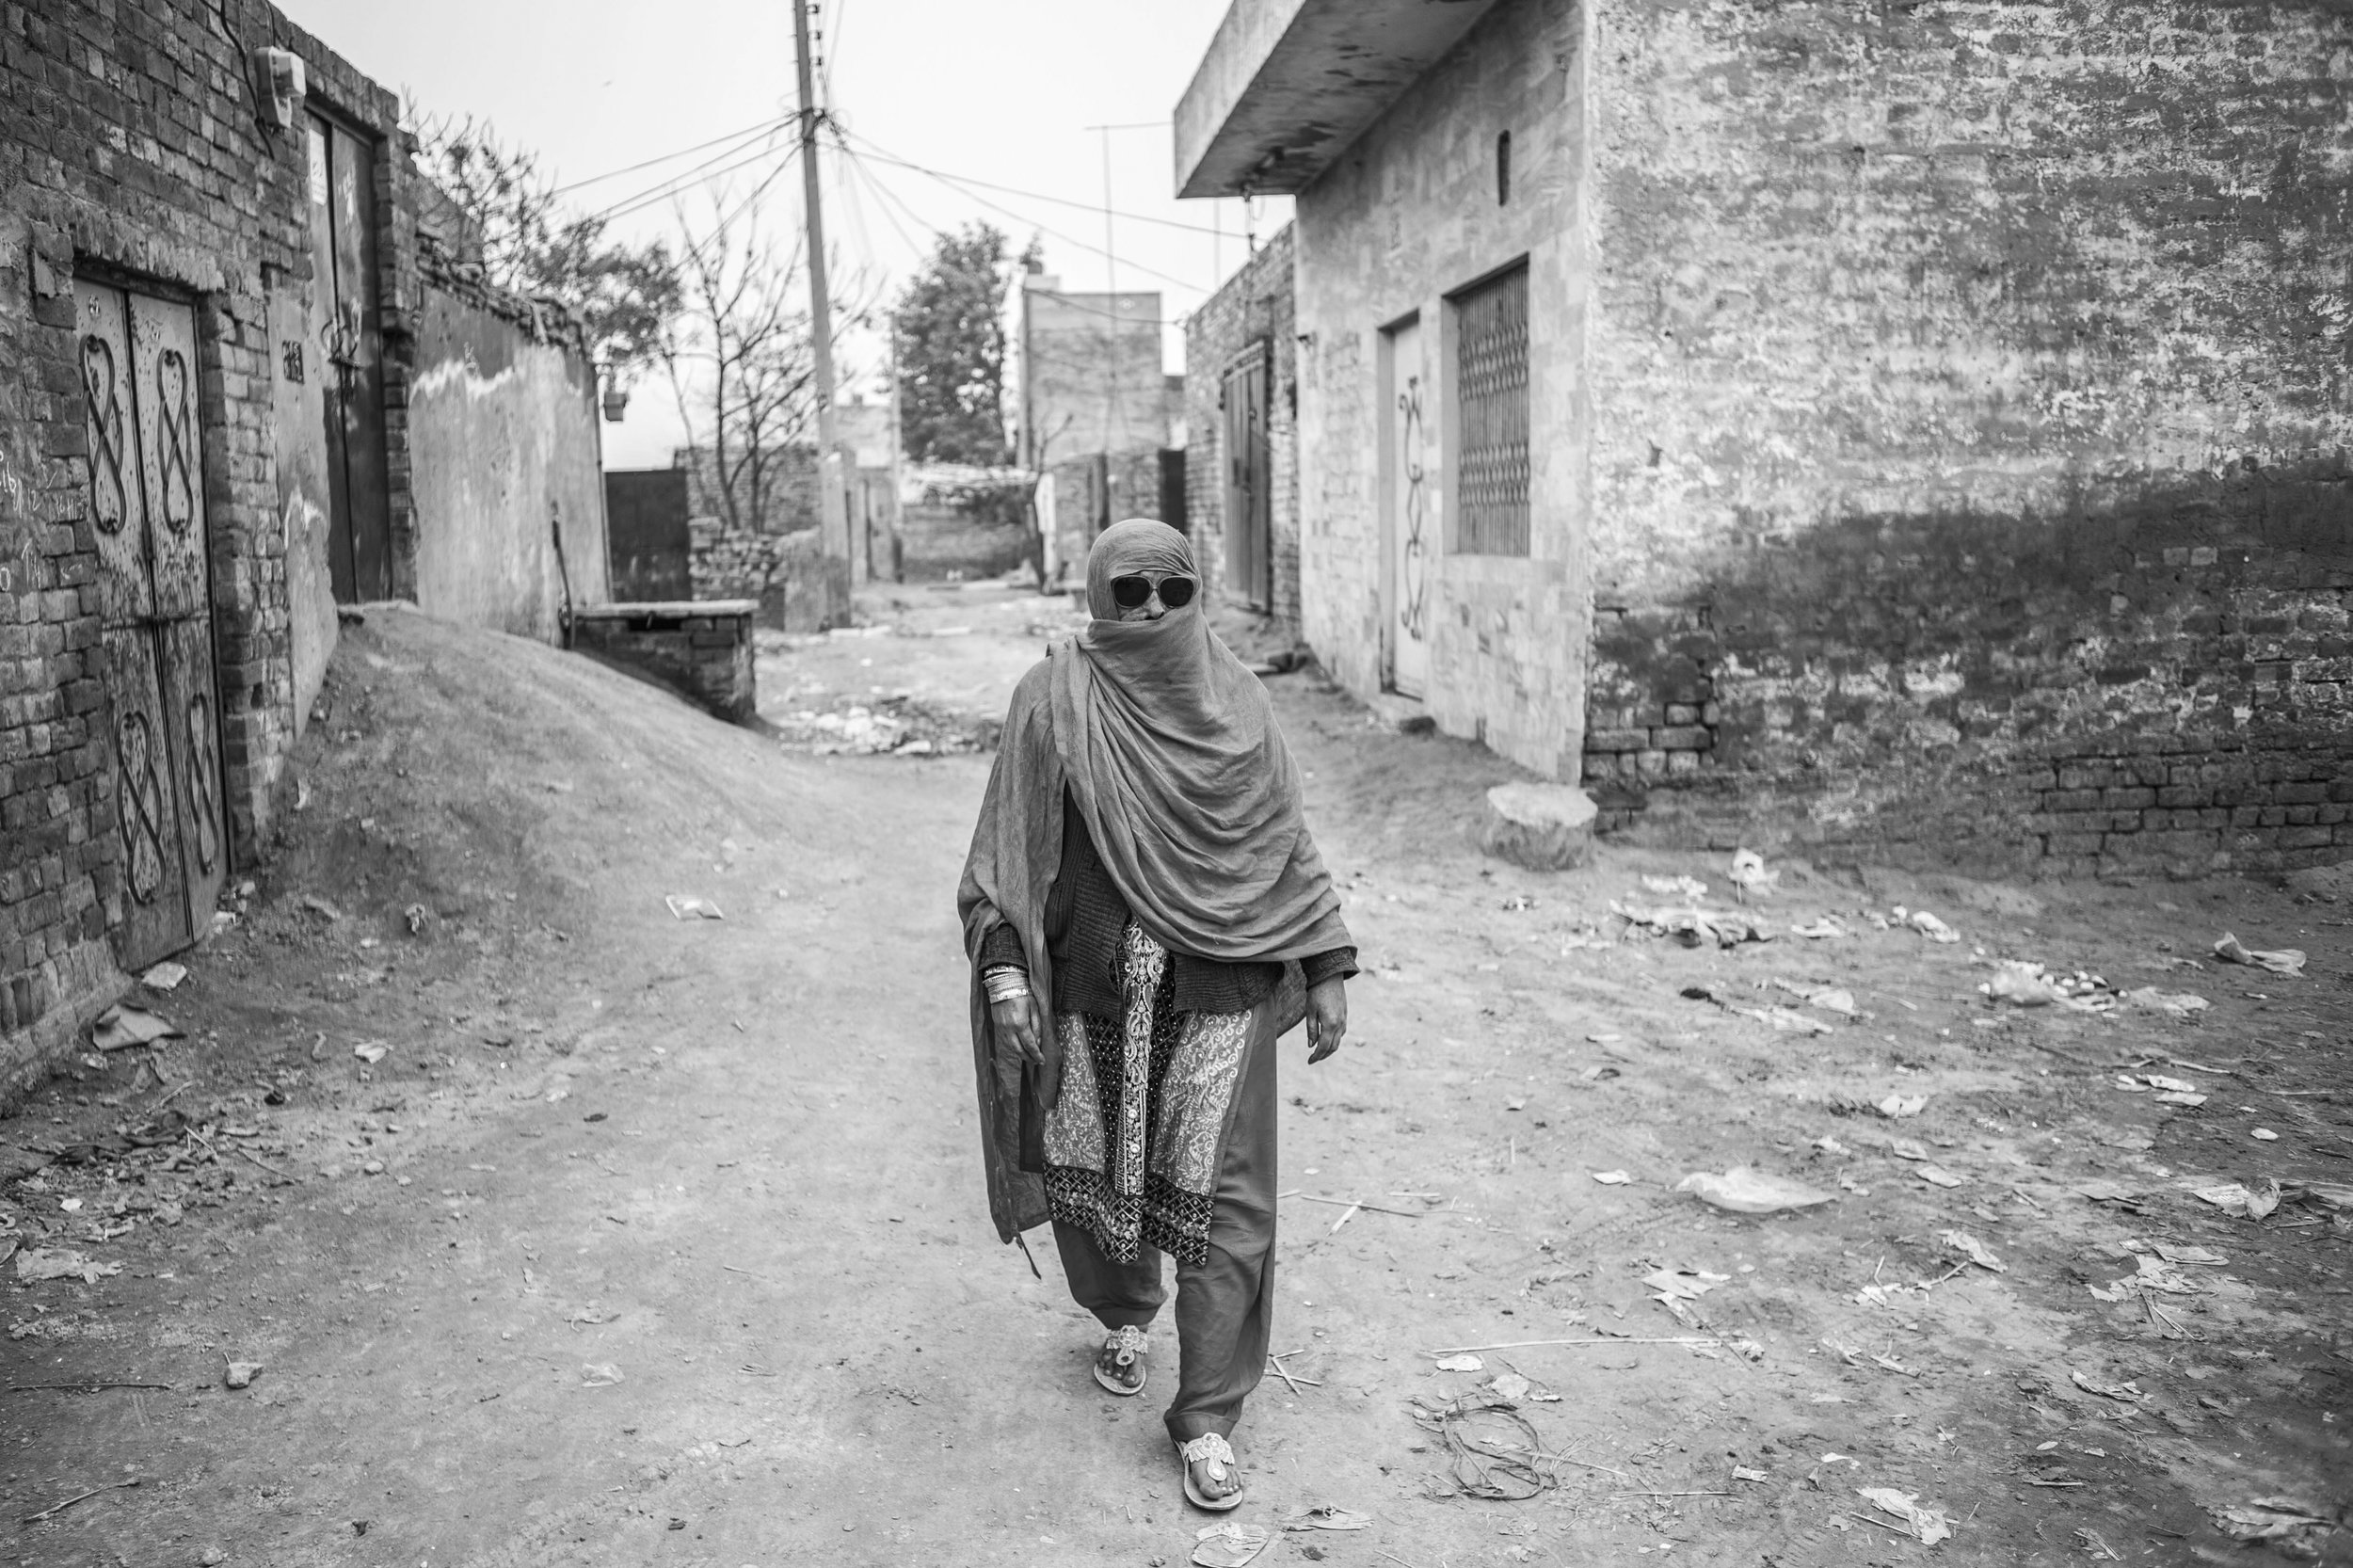 Sarwari Bibi, covers her face when she leaves her residence on Jan. 23, 2016 in Lahore, Pakistan.